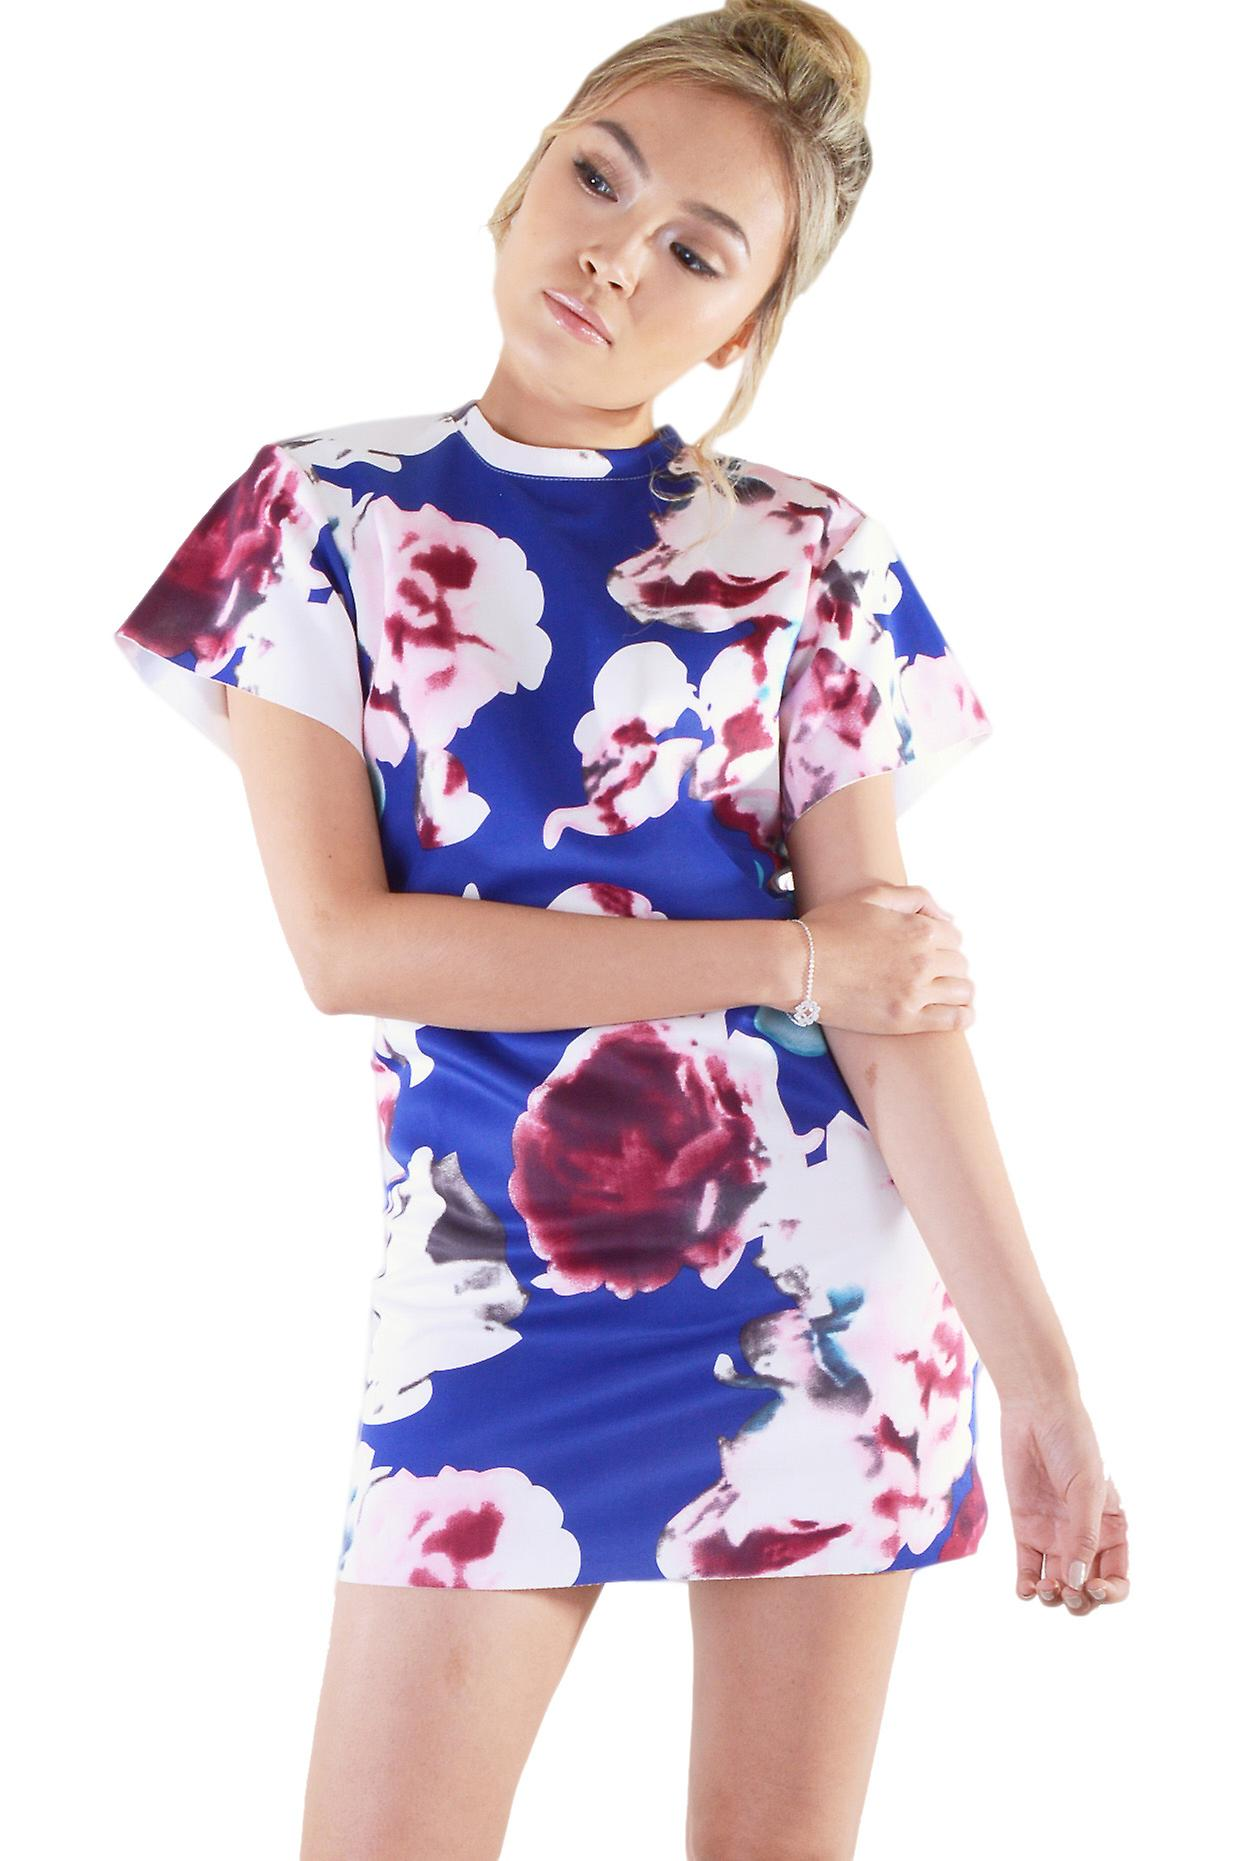 Lovemystyle Blue Dress With White And Pink Flowers